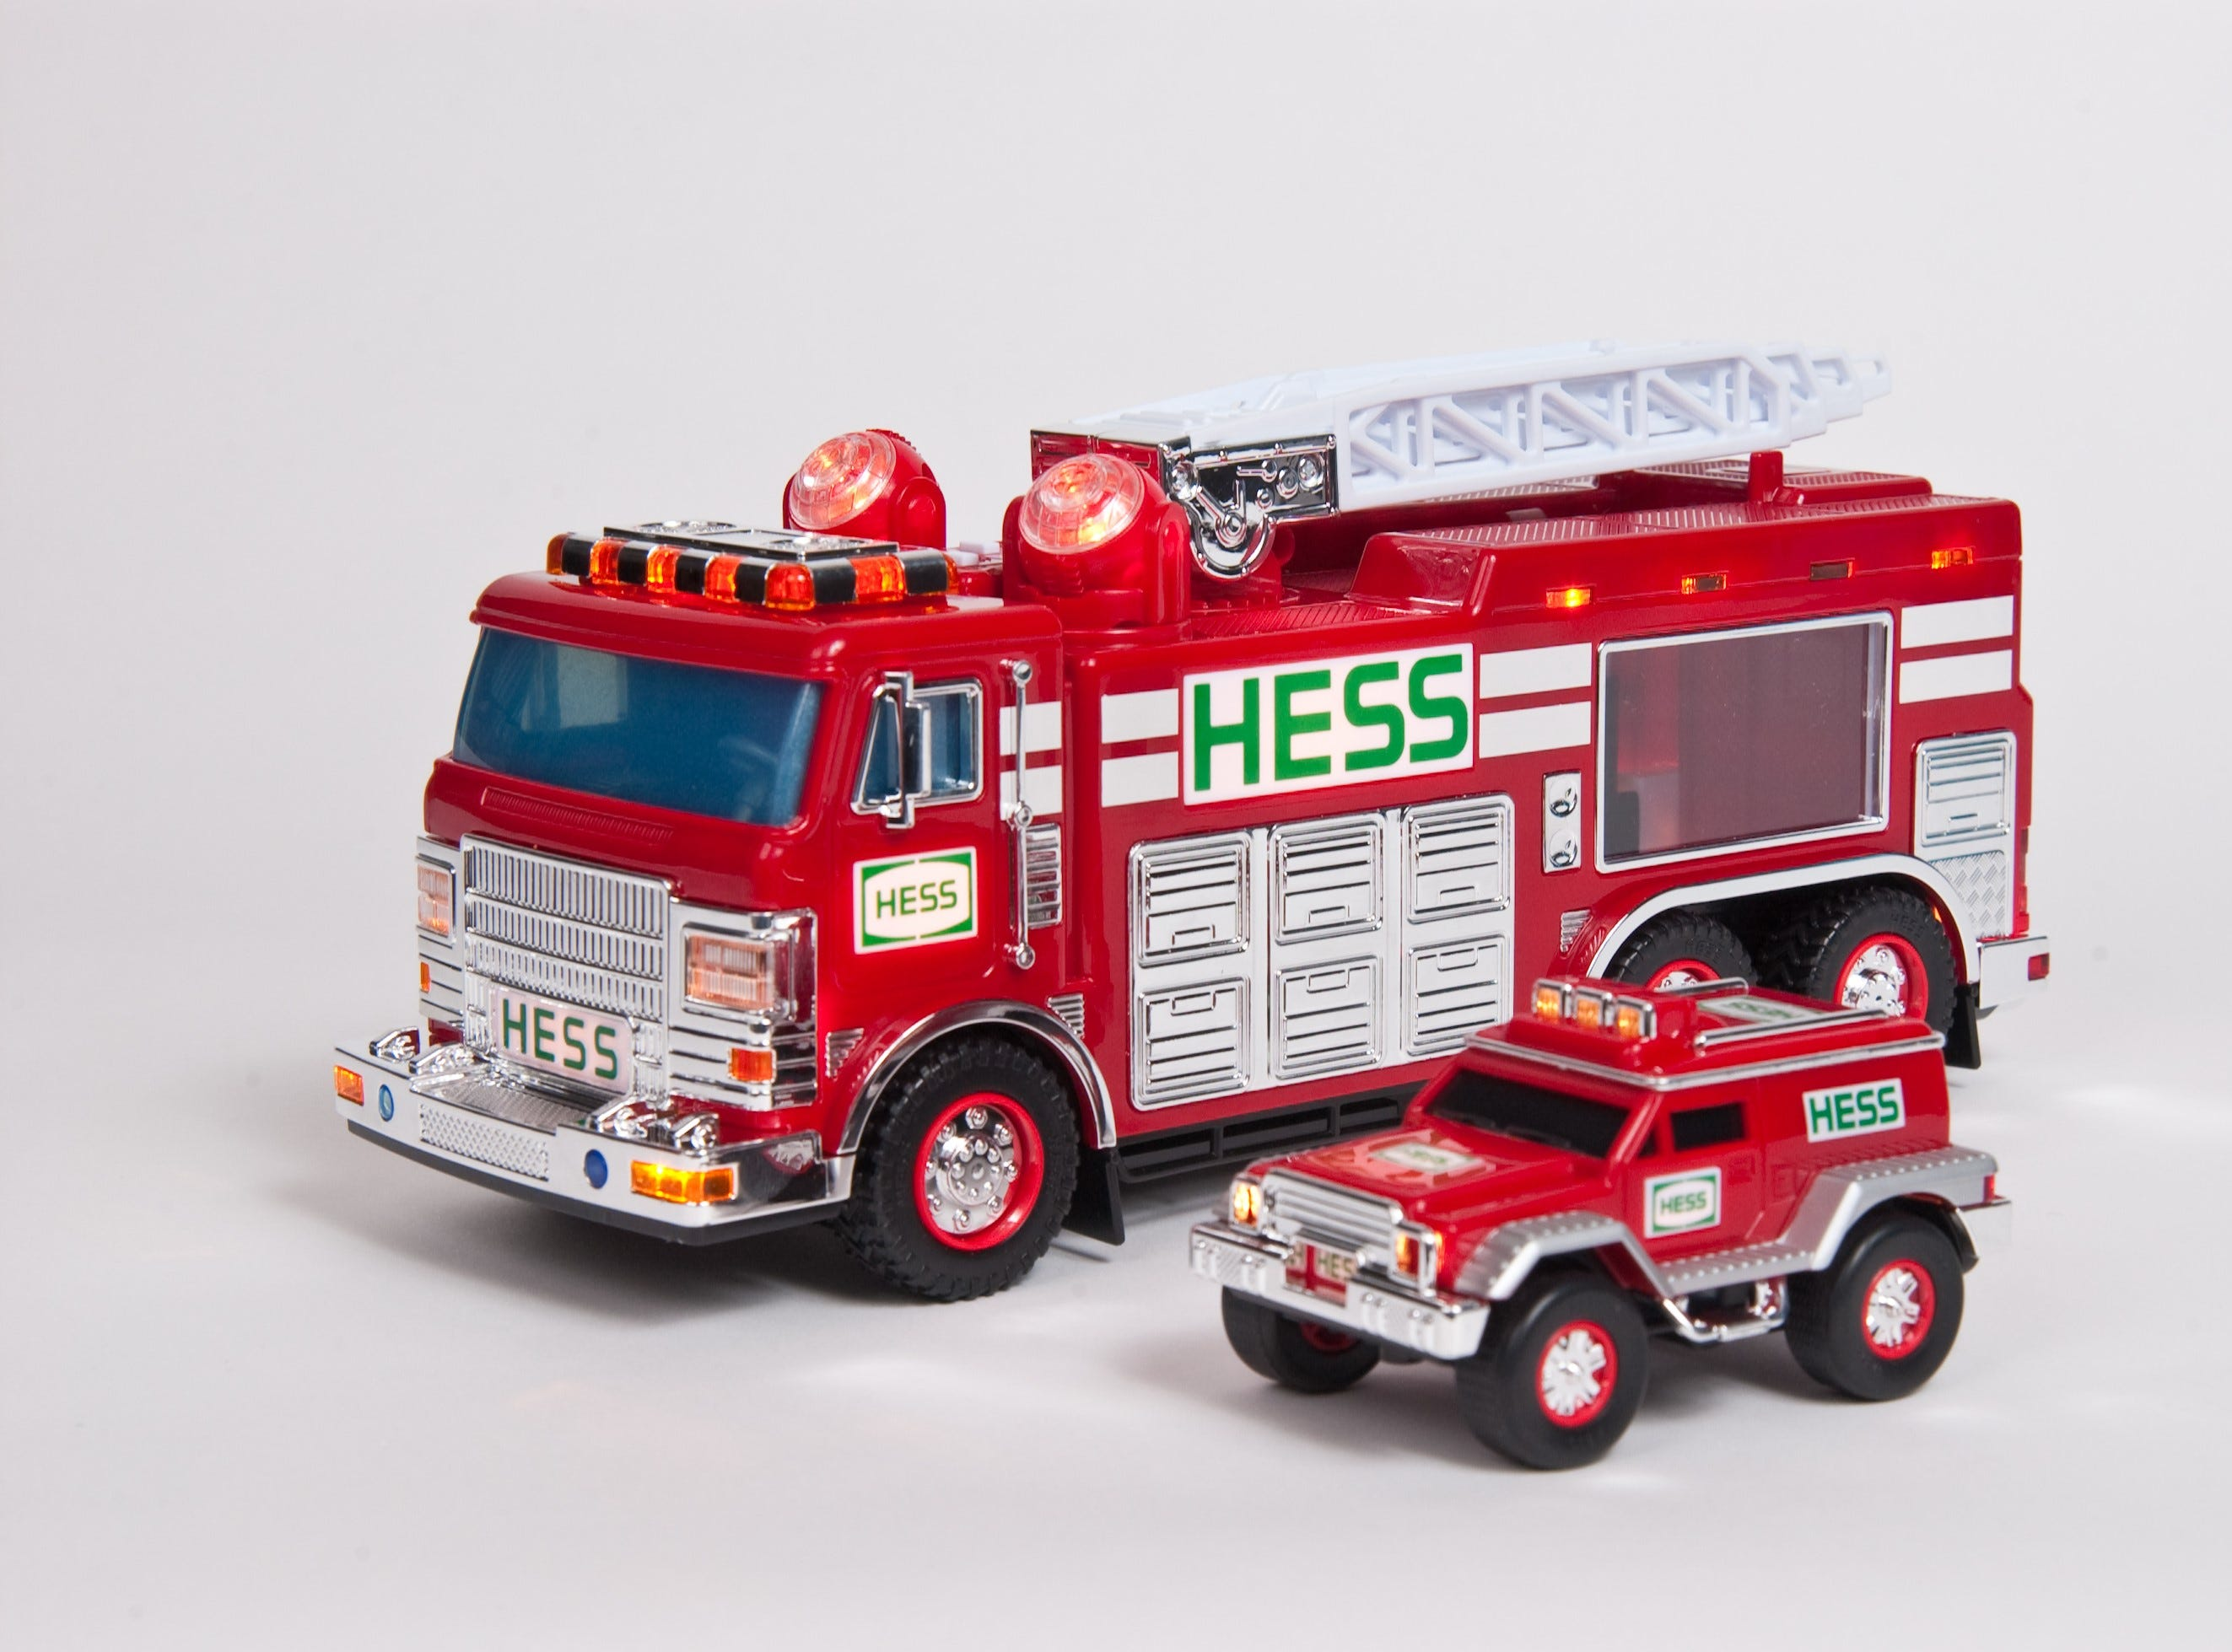 The 2005 Hess toy truck.